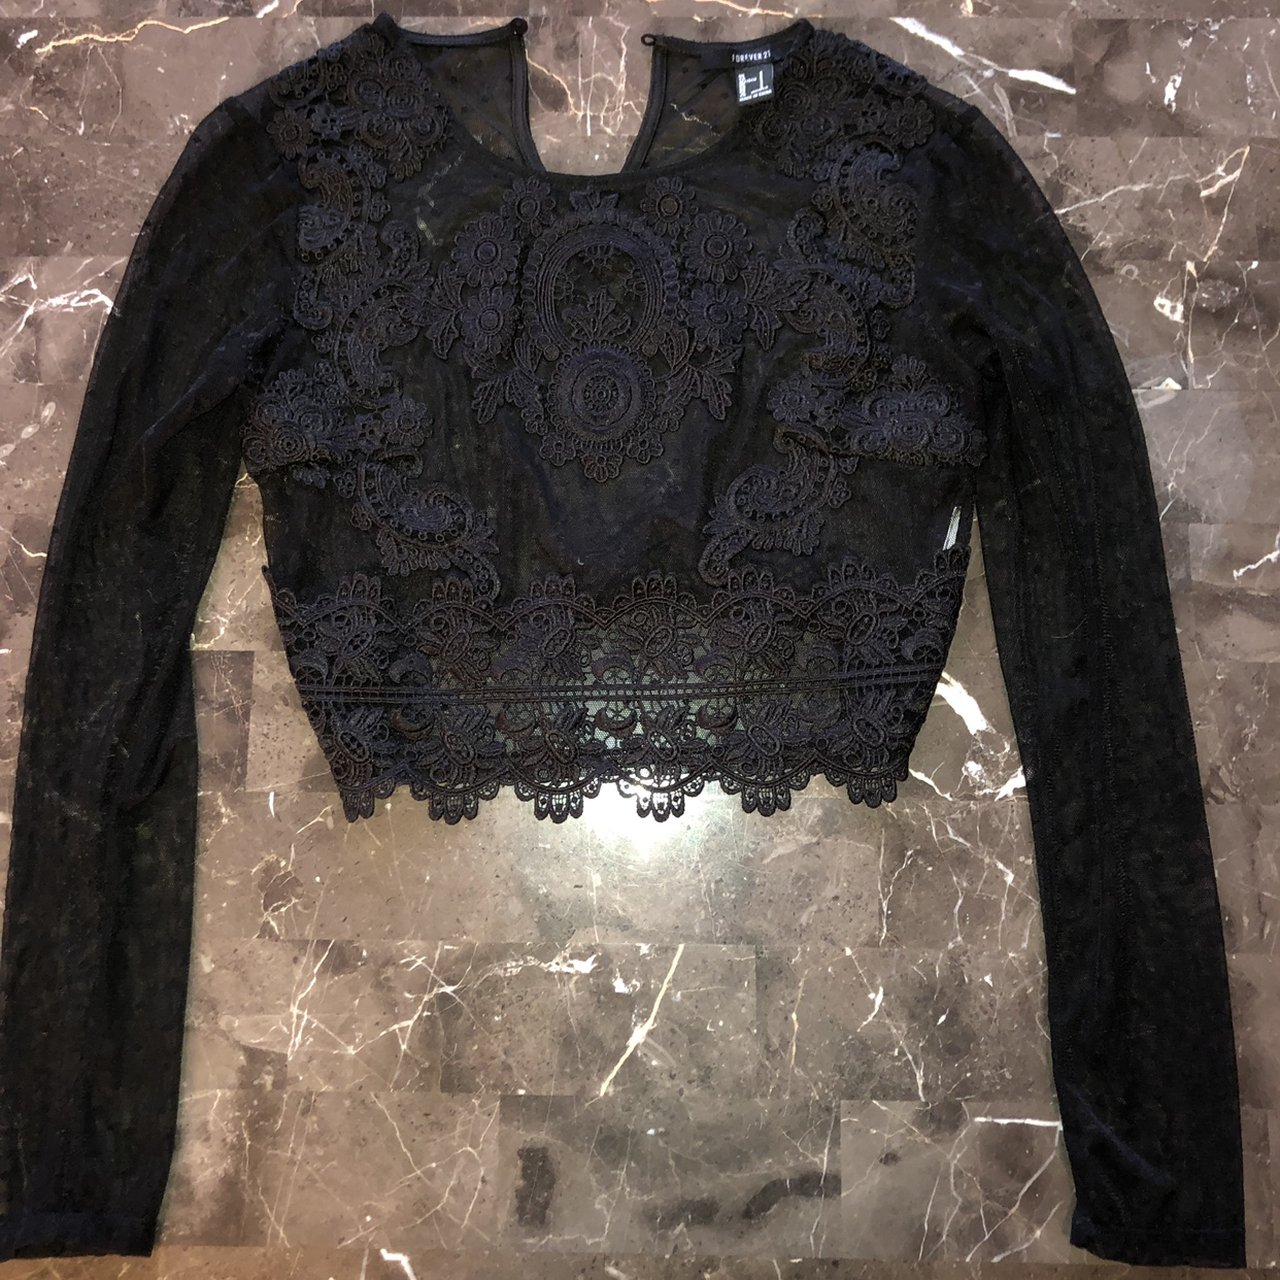 63fe928483687d black cropped sheer mesh   lace top suuuuuper sexy looks sz - Depop